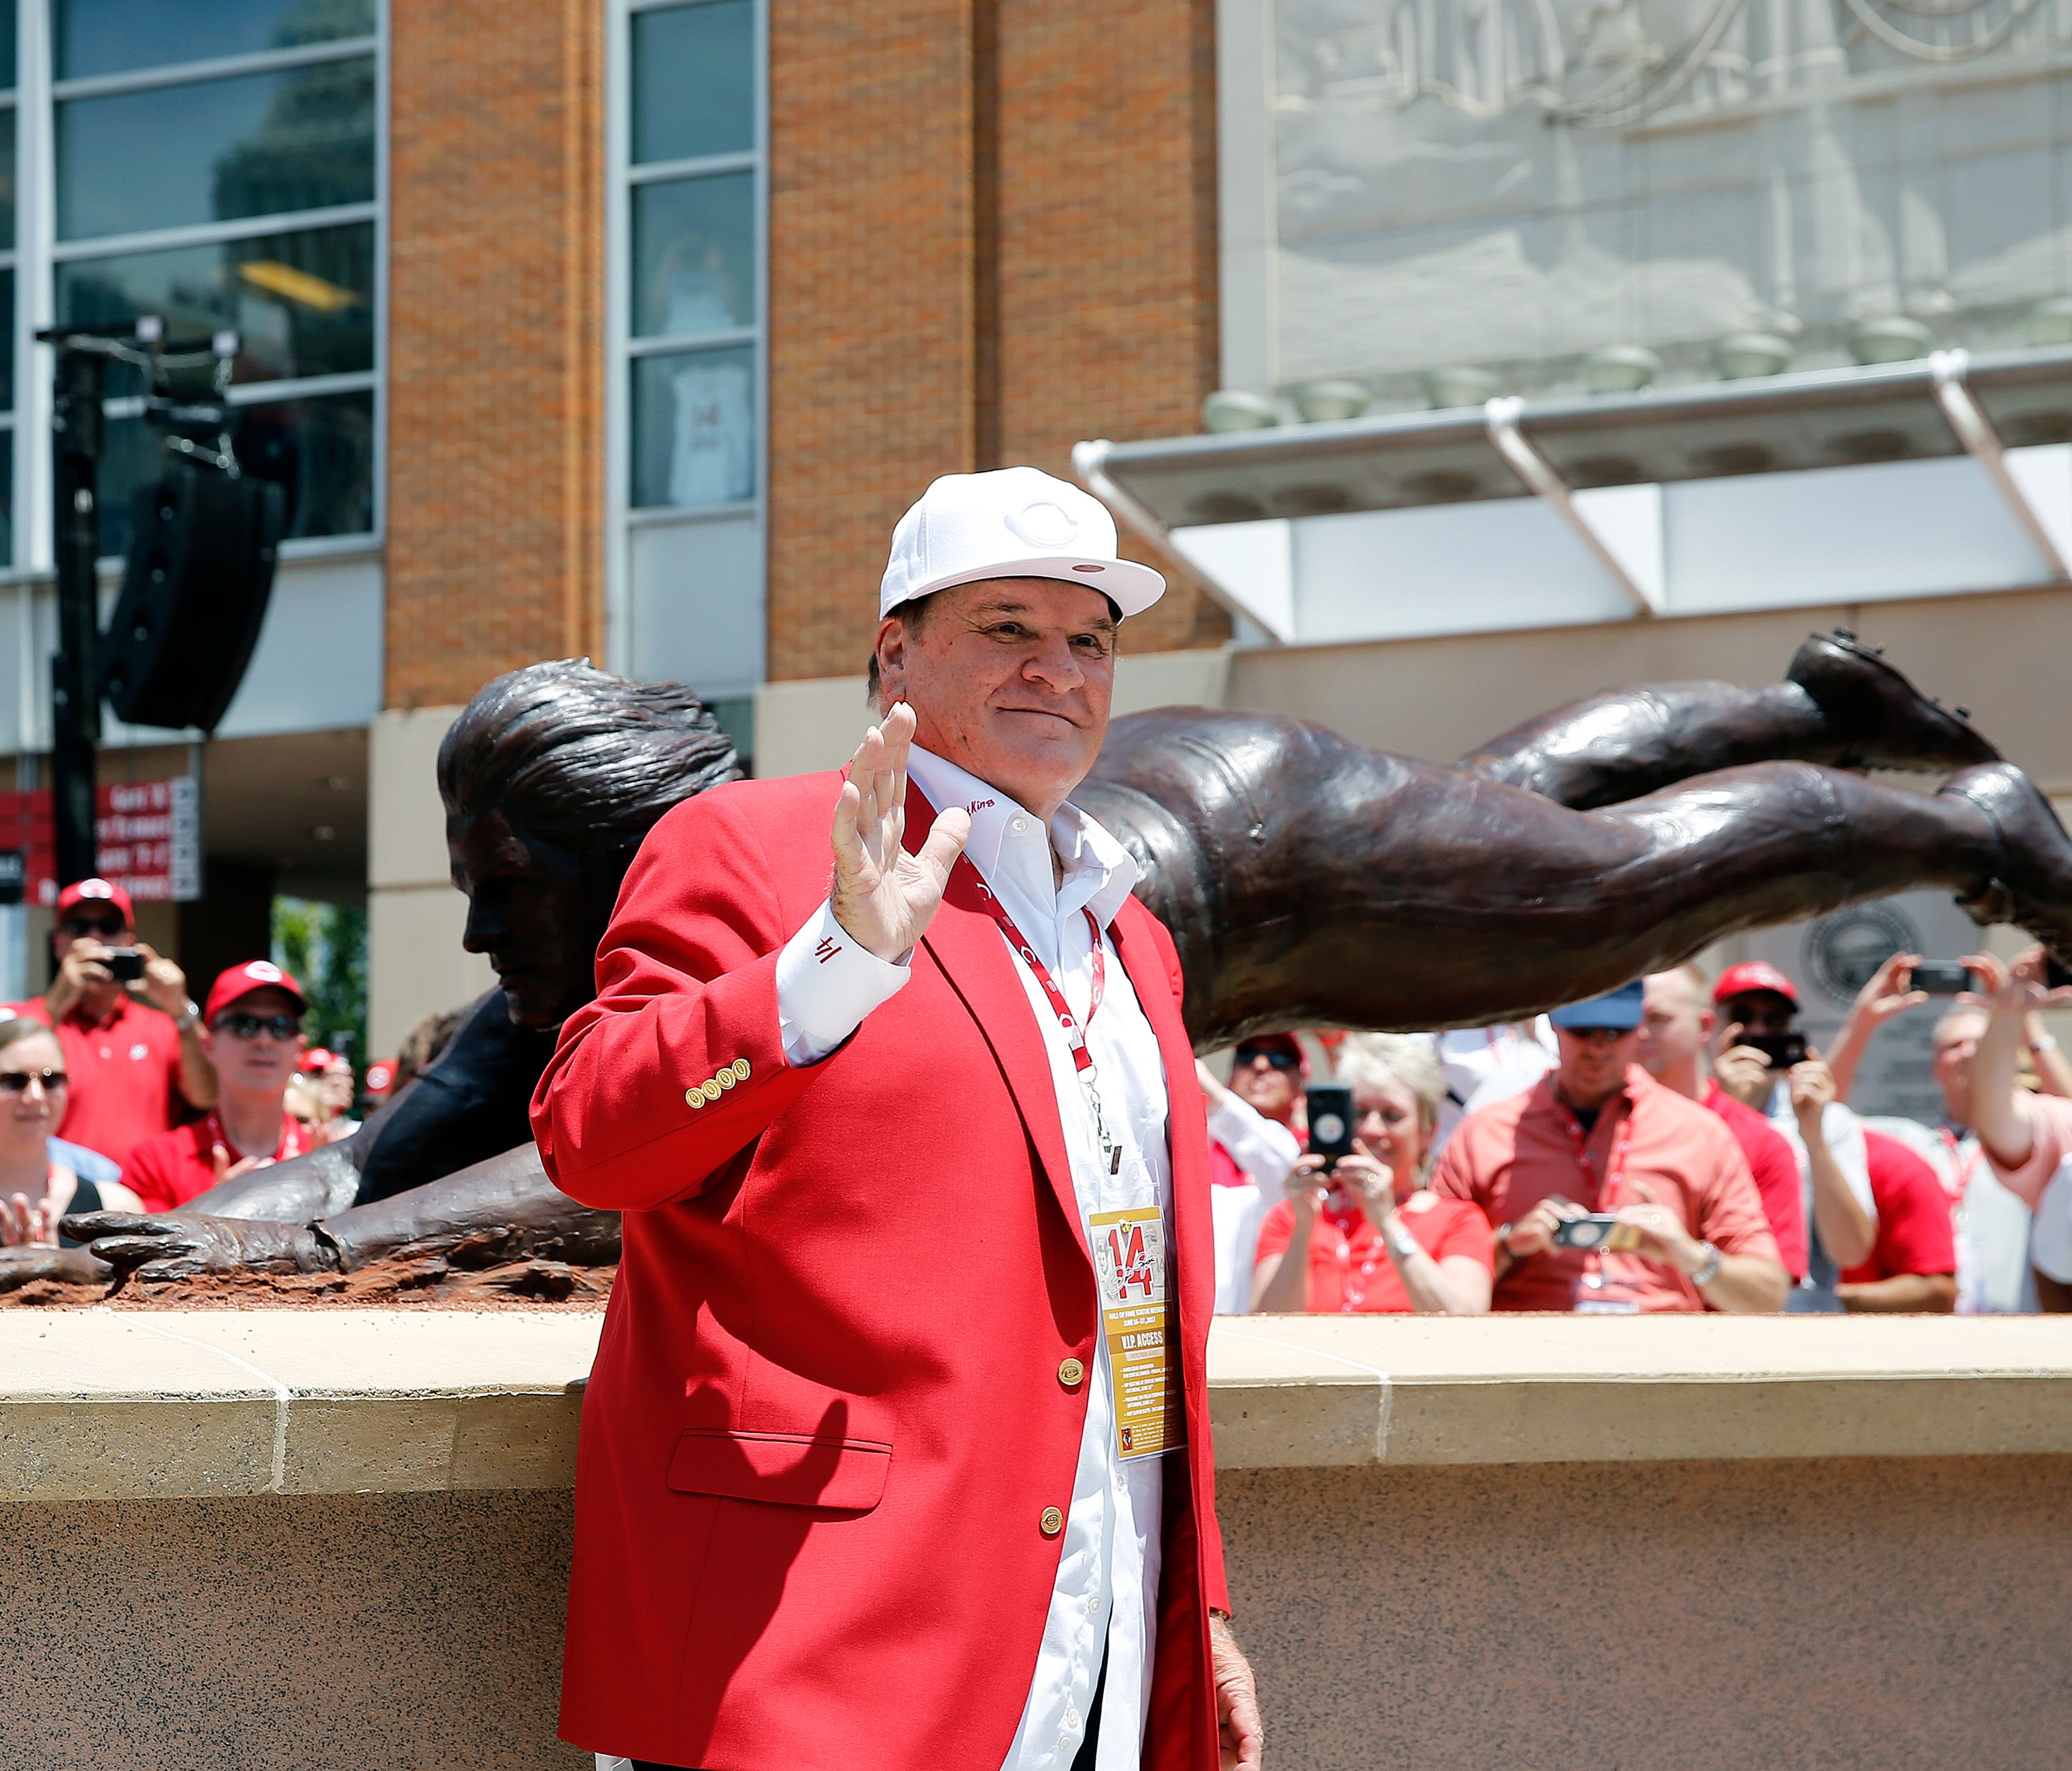 Pete Rose waves to his fans during the unveiling for a bronze statue dedicated to him at Great American Ball Park Saturday June 17, 2017.